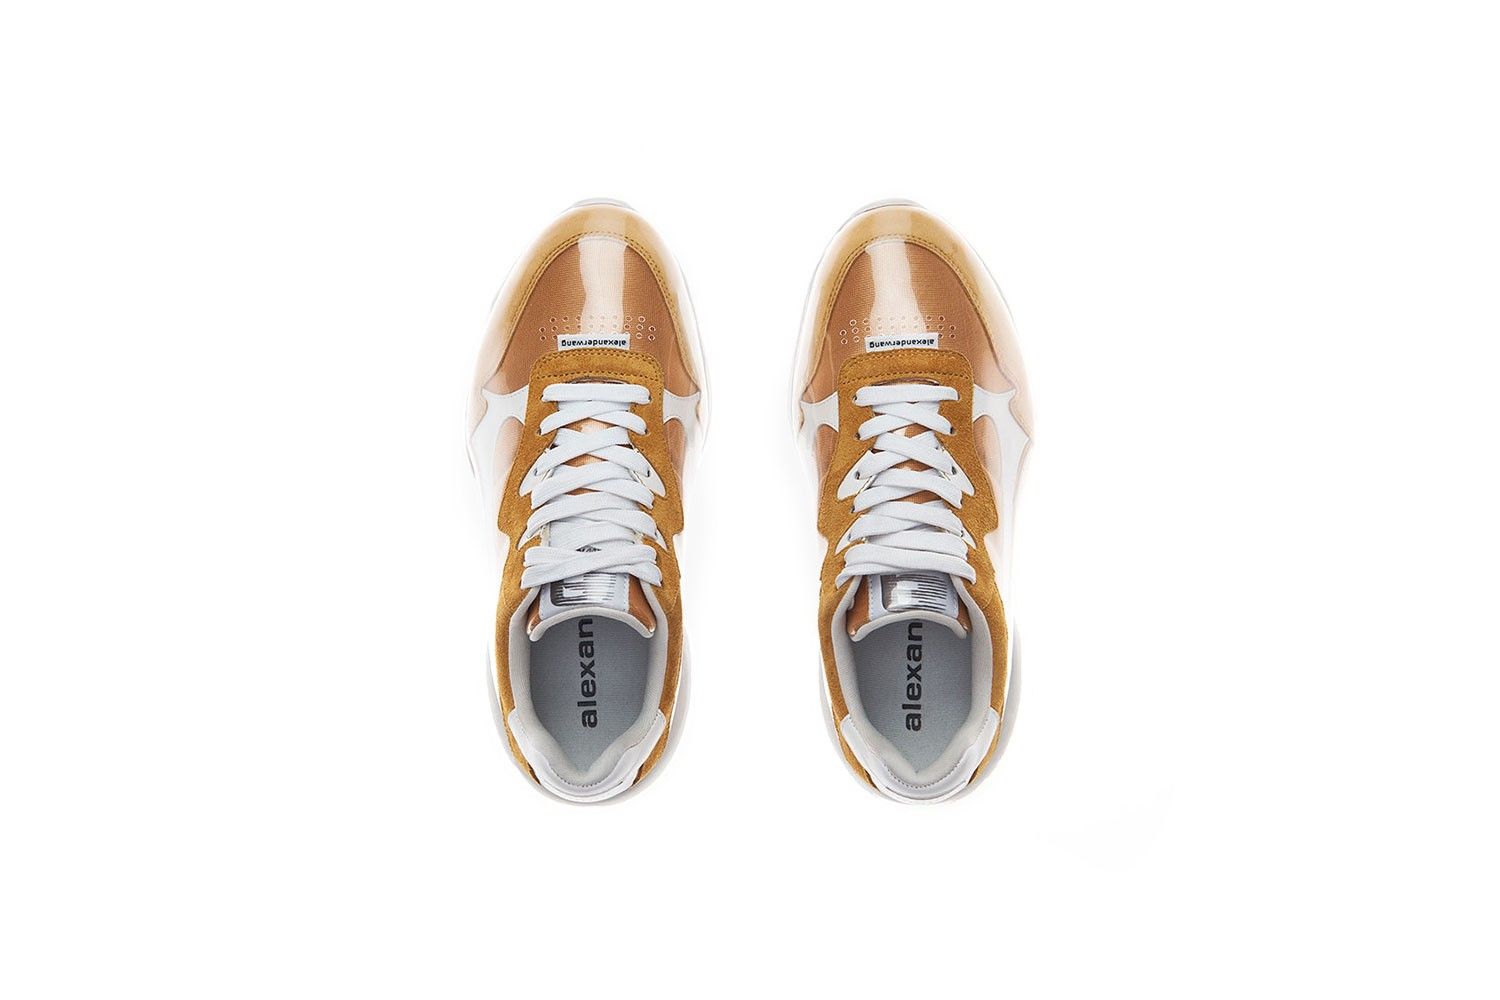 alexander wang rickey thompson white sneaker pvc infomercial campaign black mineral yellow footwear